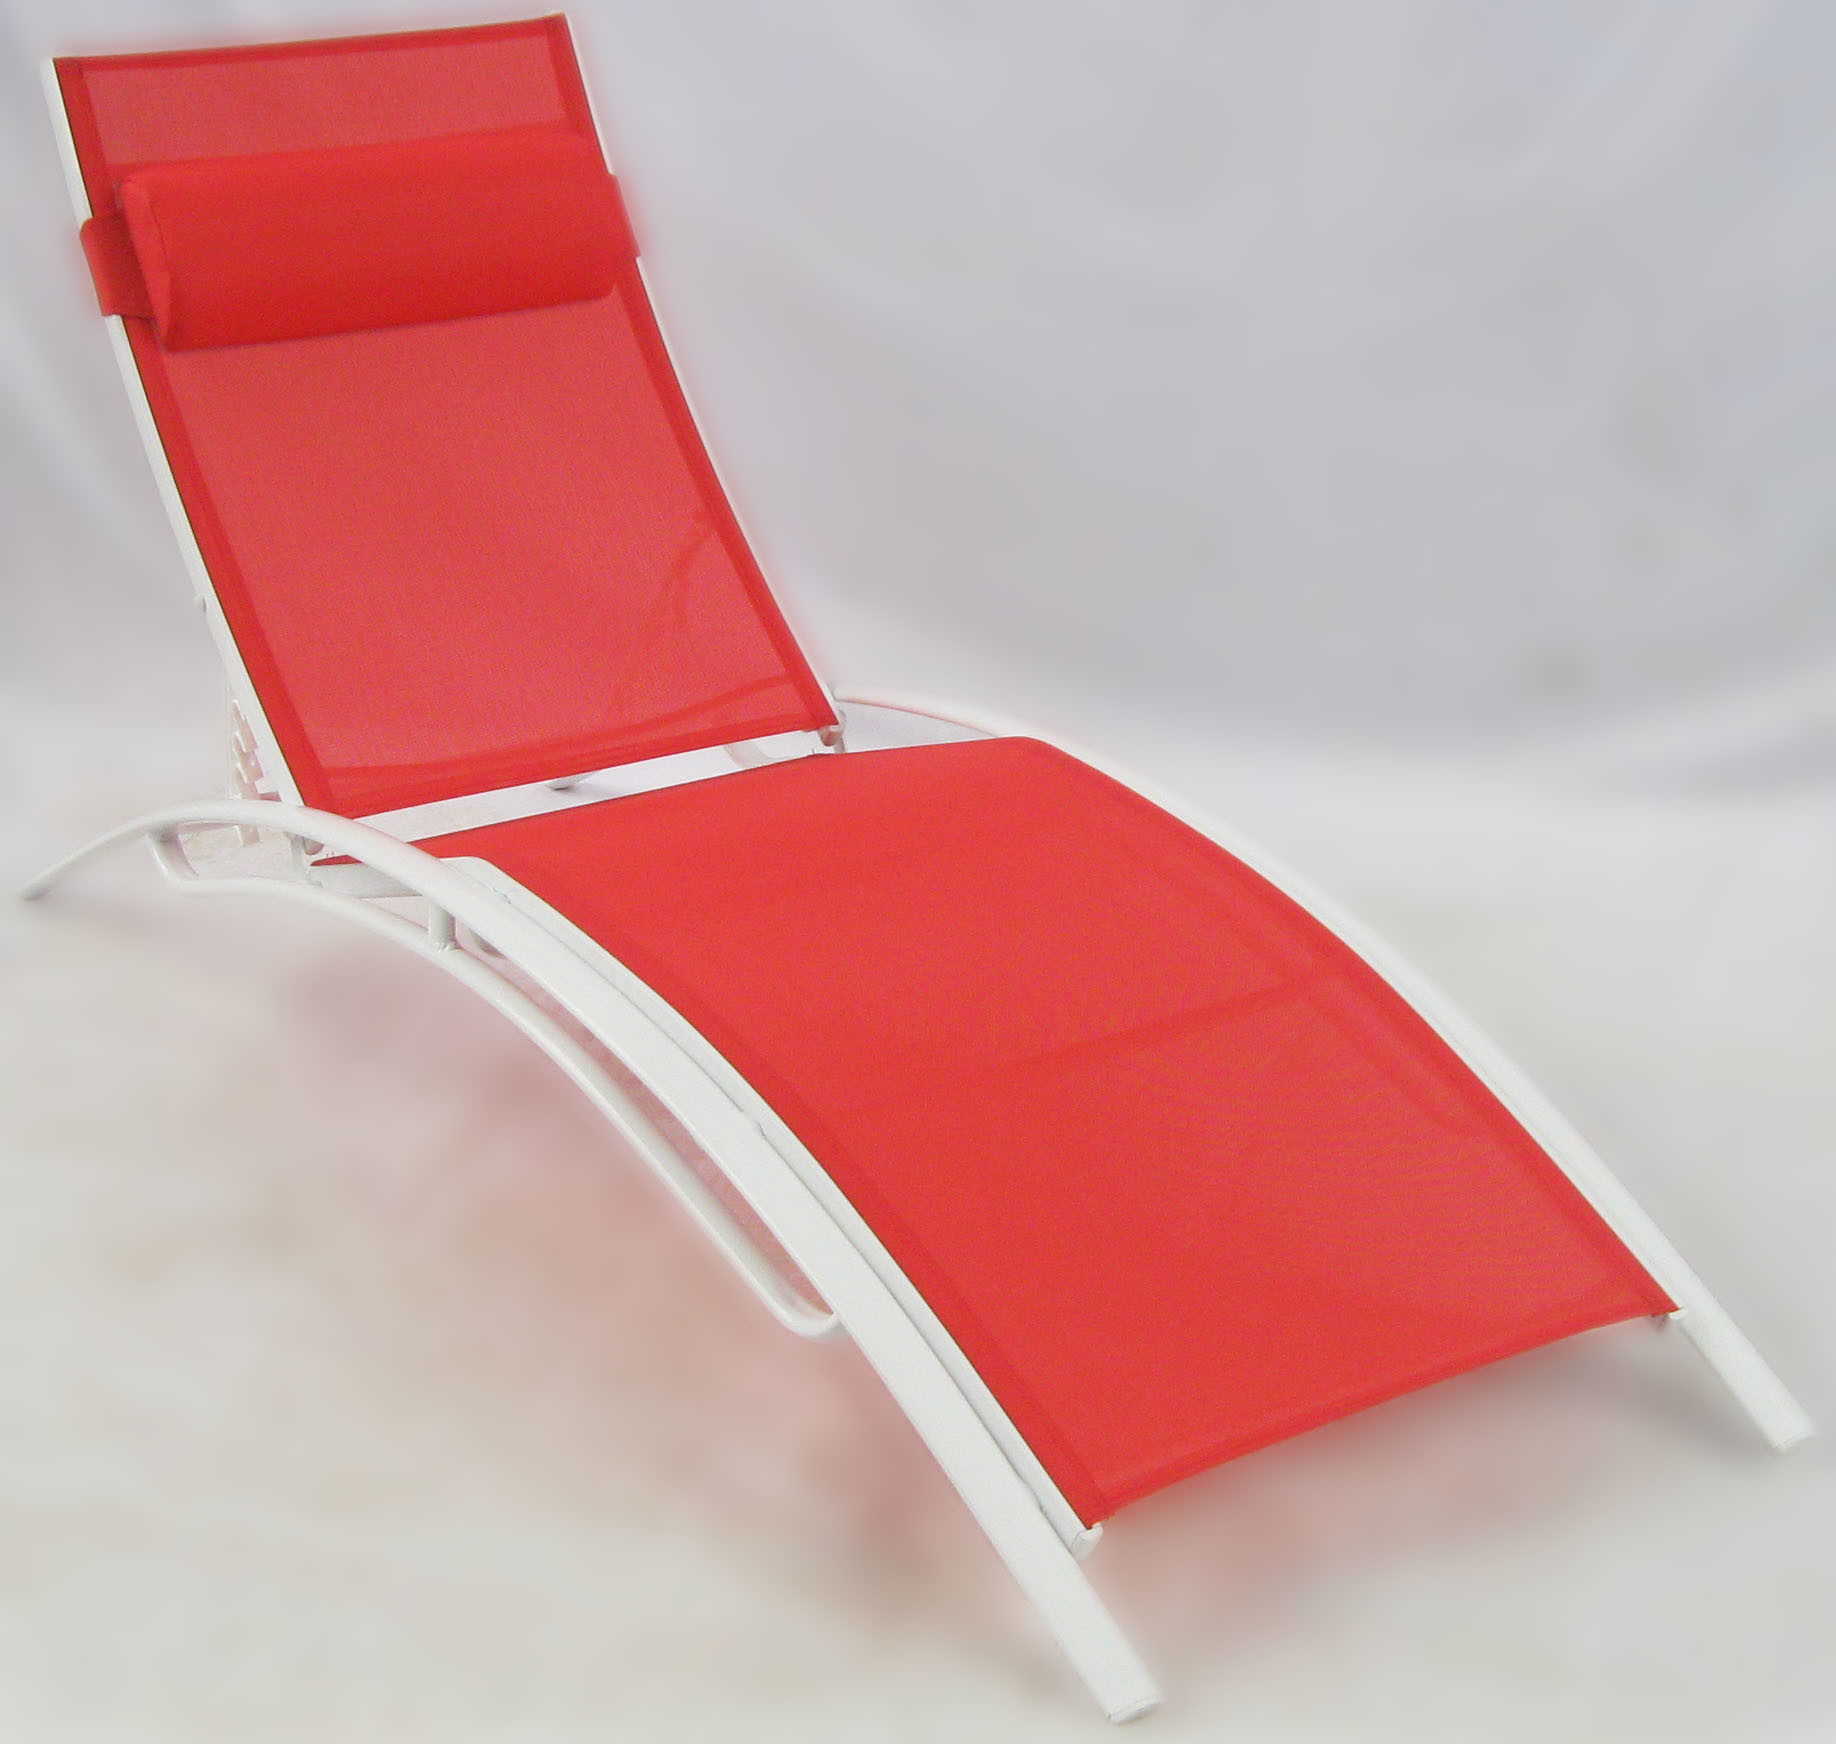 China Steel Relax Lounge Chair (C8) - China Bed, Furniture